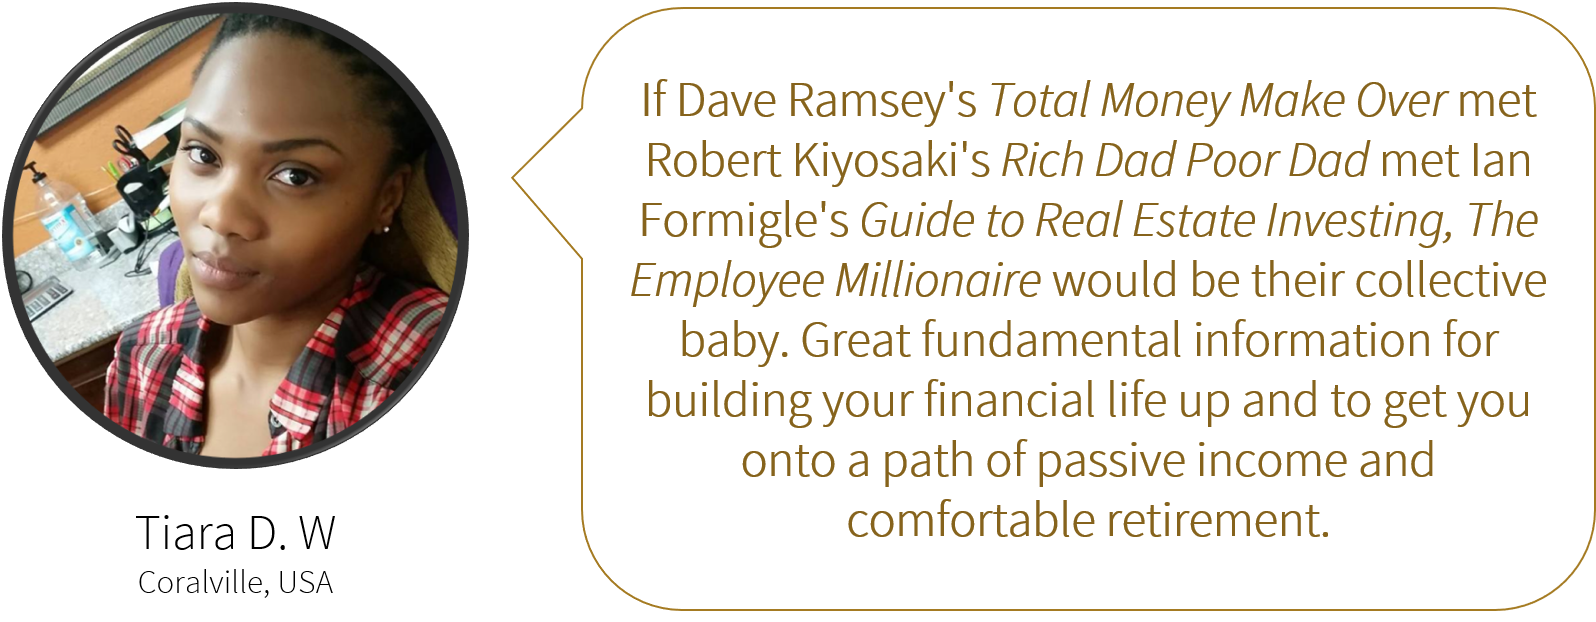 If Dave Ramsey's Total Money Make Over met Robert Kiyosaki's Rich Dad Poor Dad met Ian Formigle's Guide to Real Estate Investing, The Employee Millionaire would be their collective baby. Great fundamental information for building your financial life up and to get you onto a path of passive income and comfortable retirement.